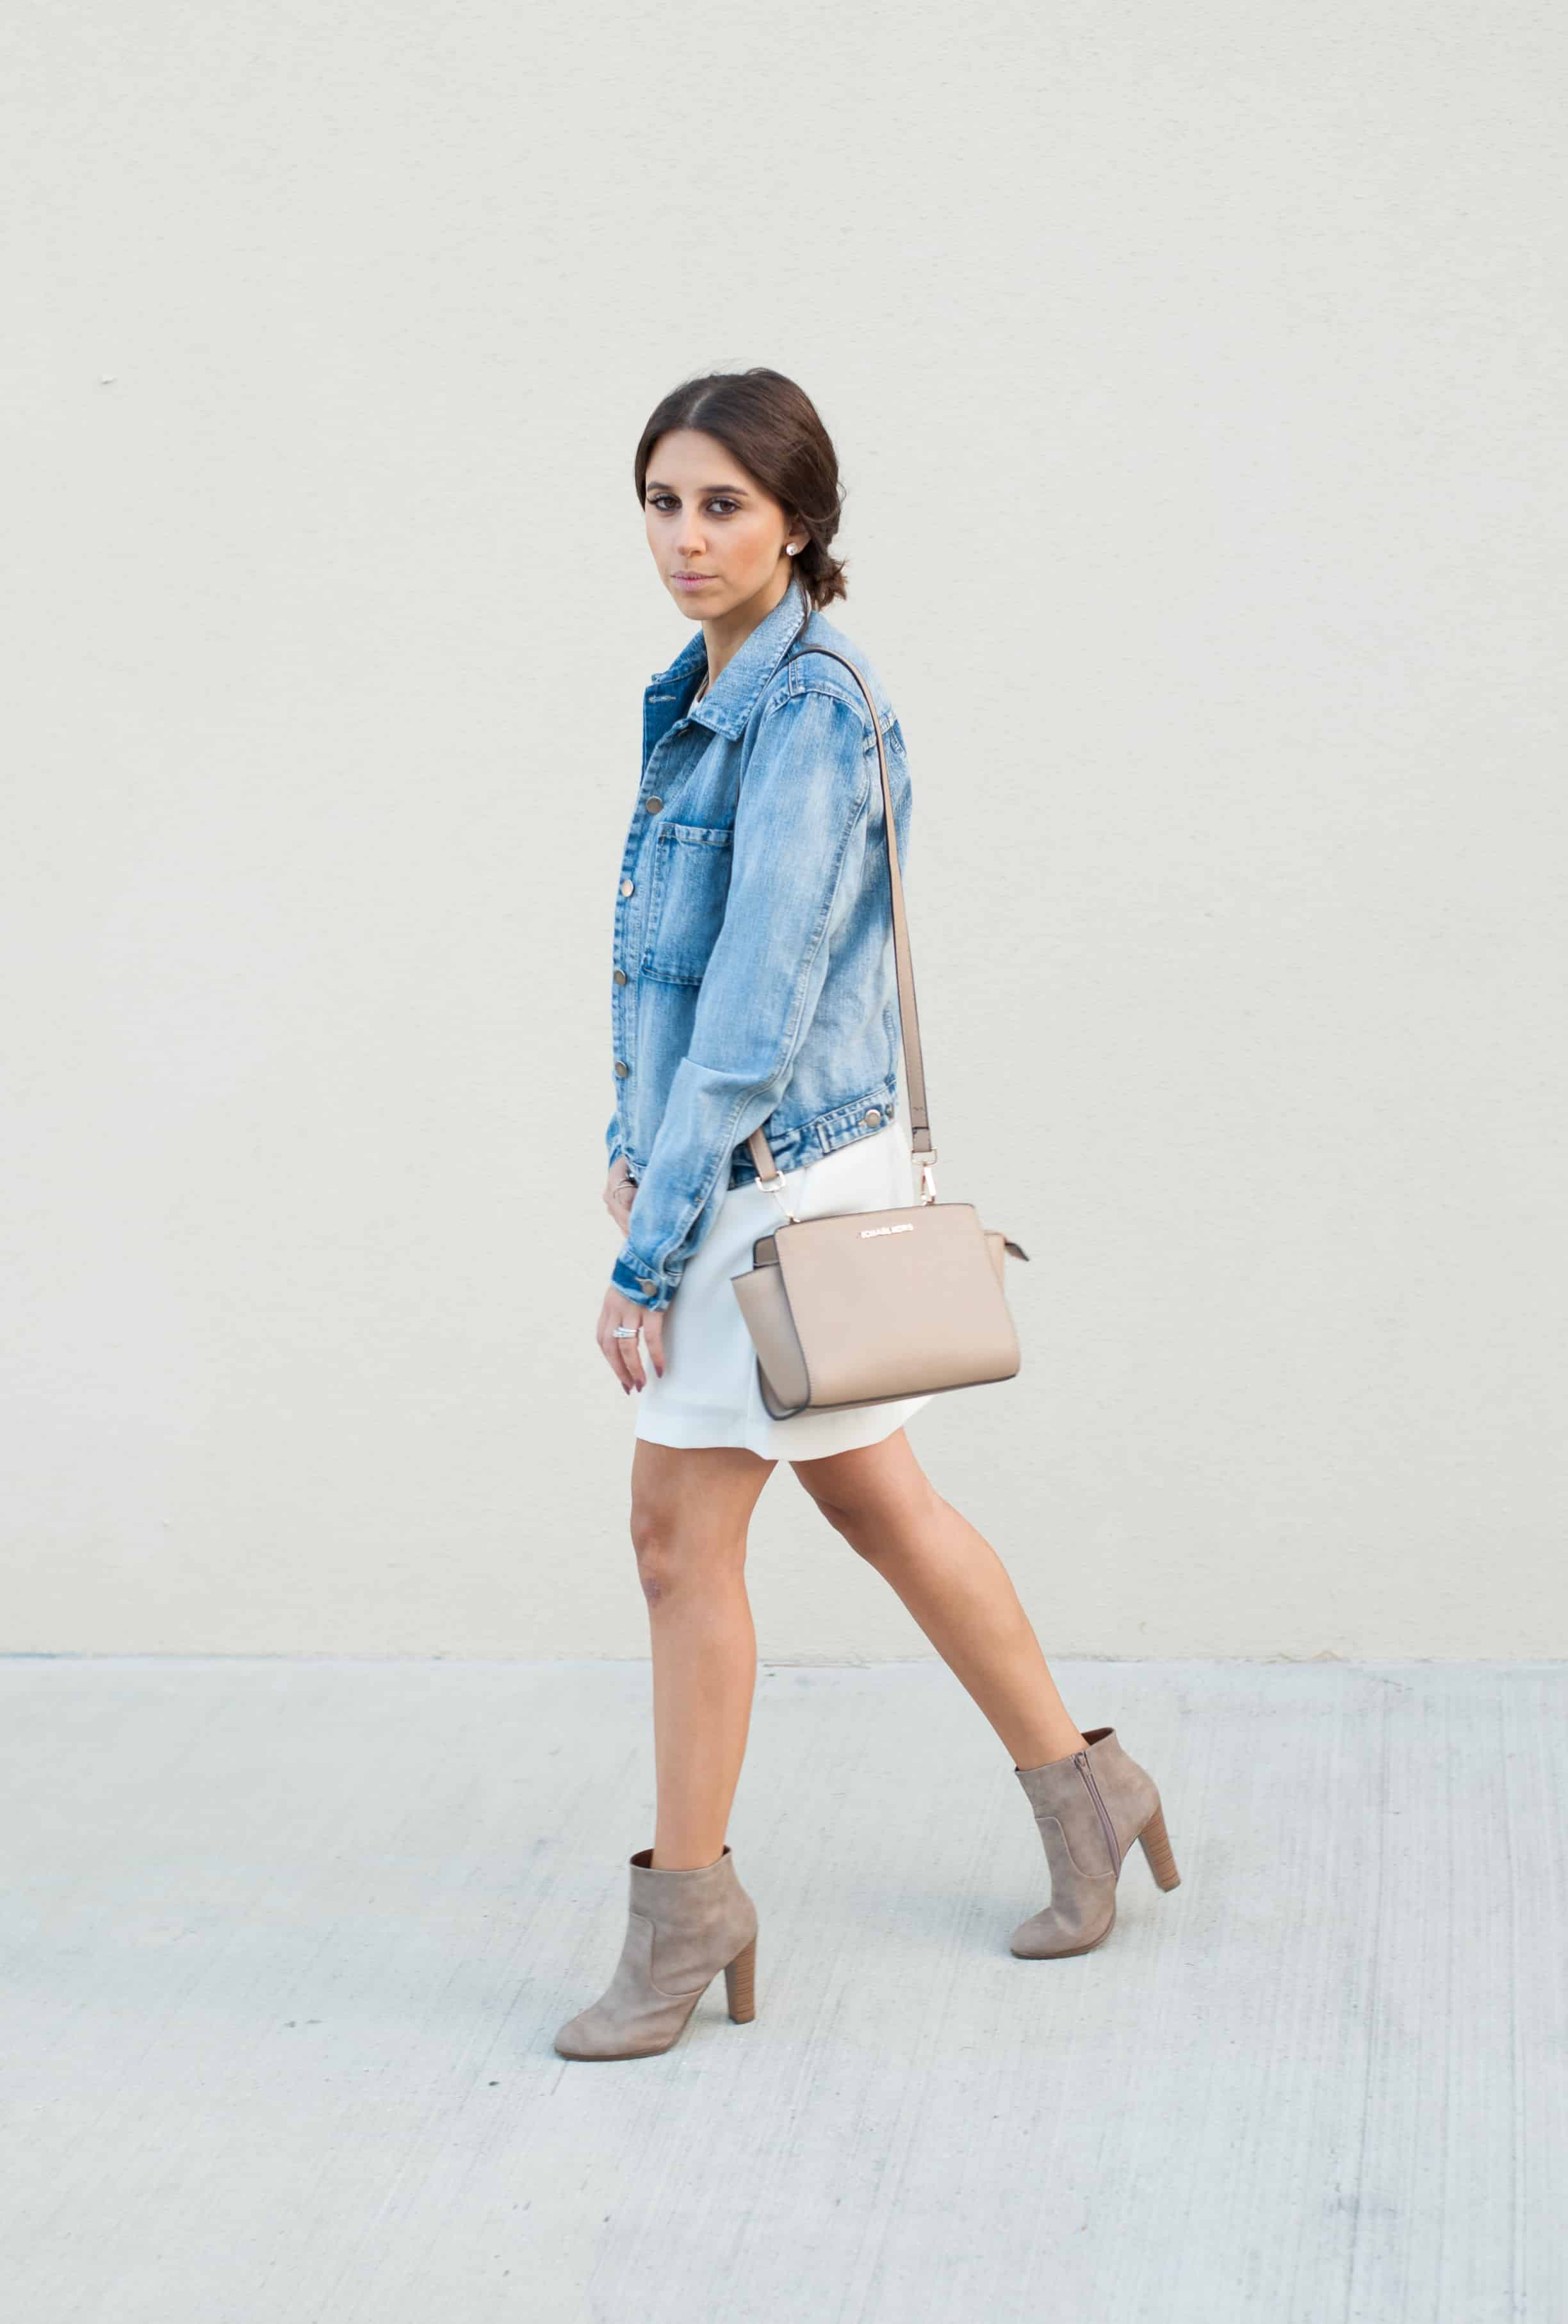 dress_up_buttercup_dede_raad_houston_fashion_style_blog (9 of 9)